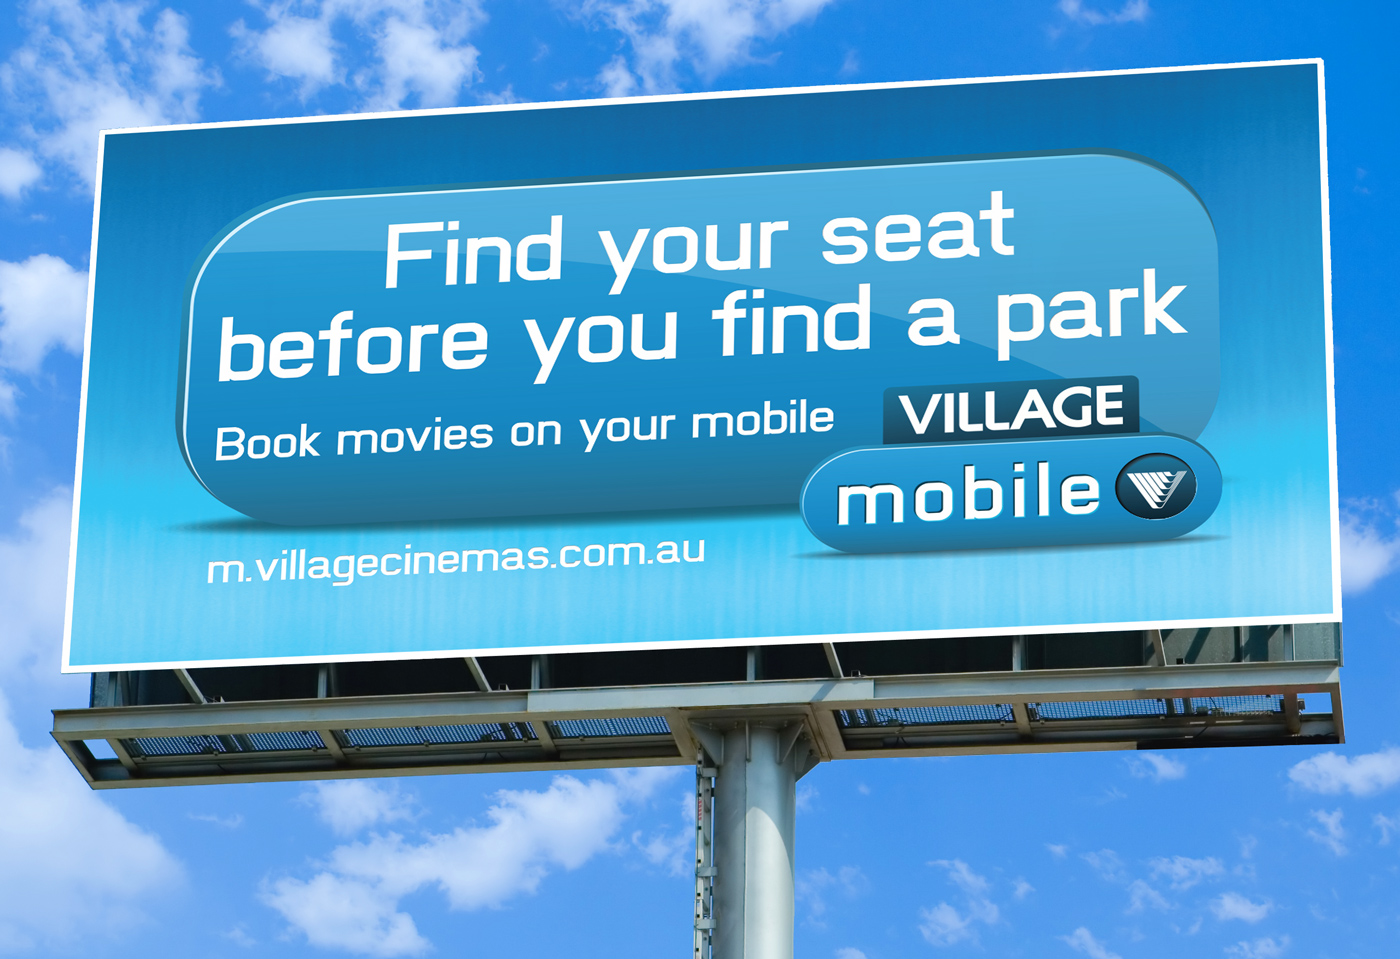 case_study_village_mobile_tix_4_1400px